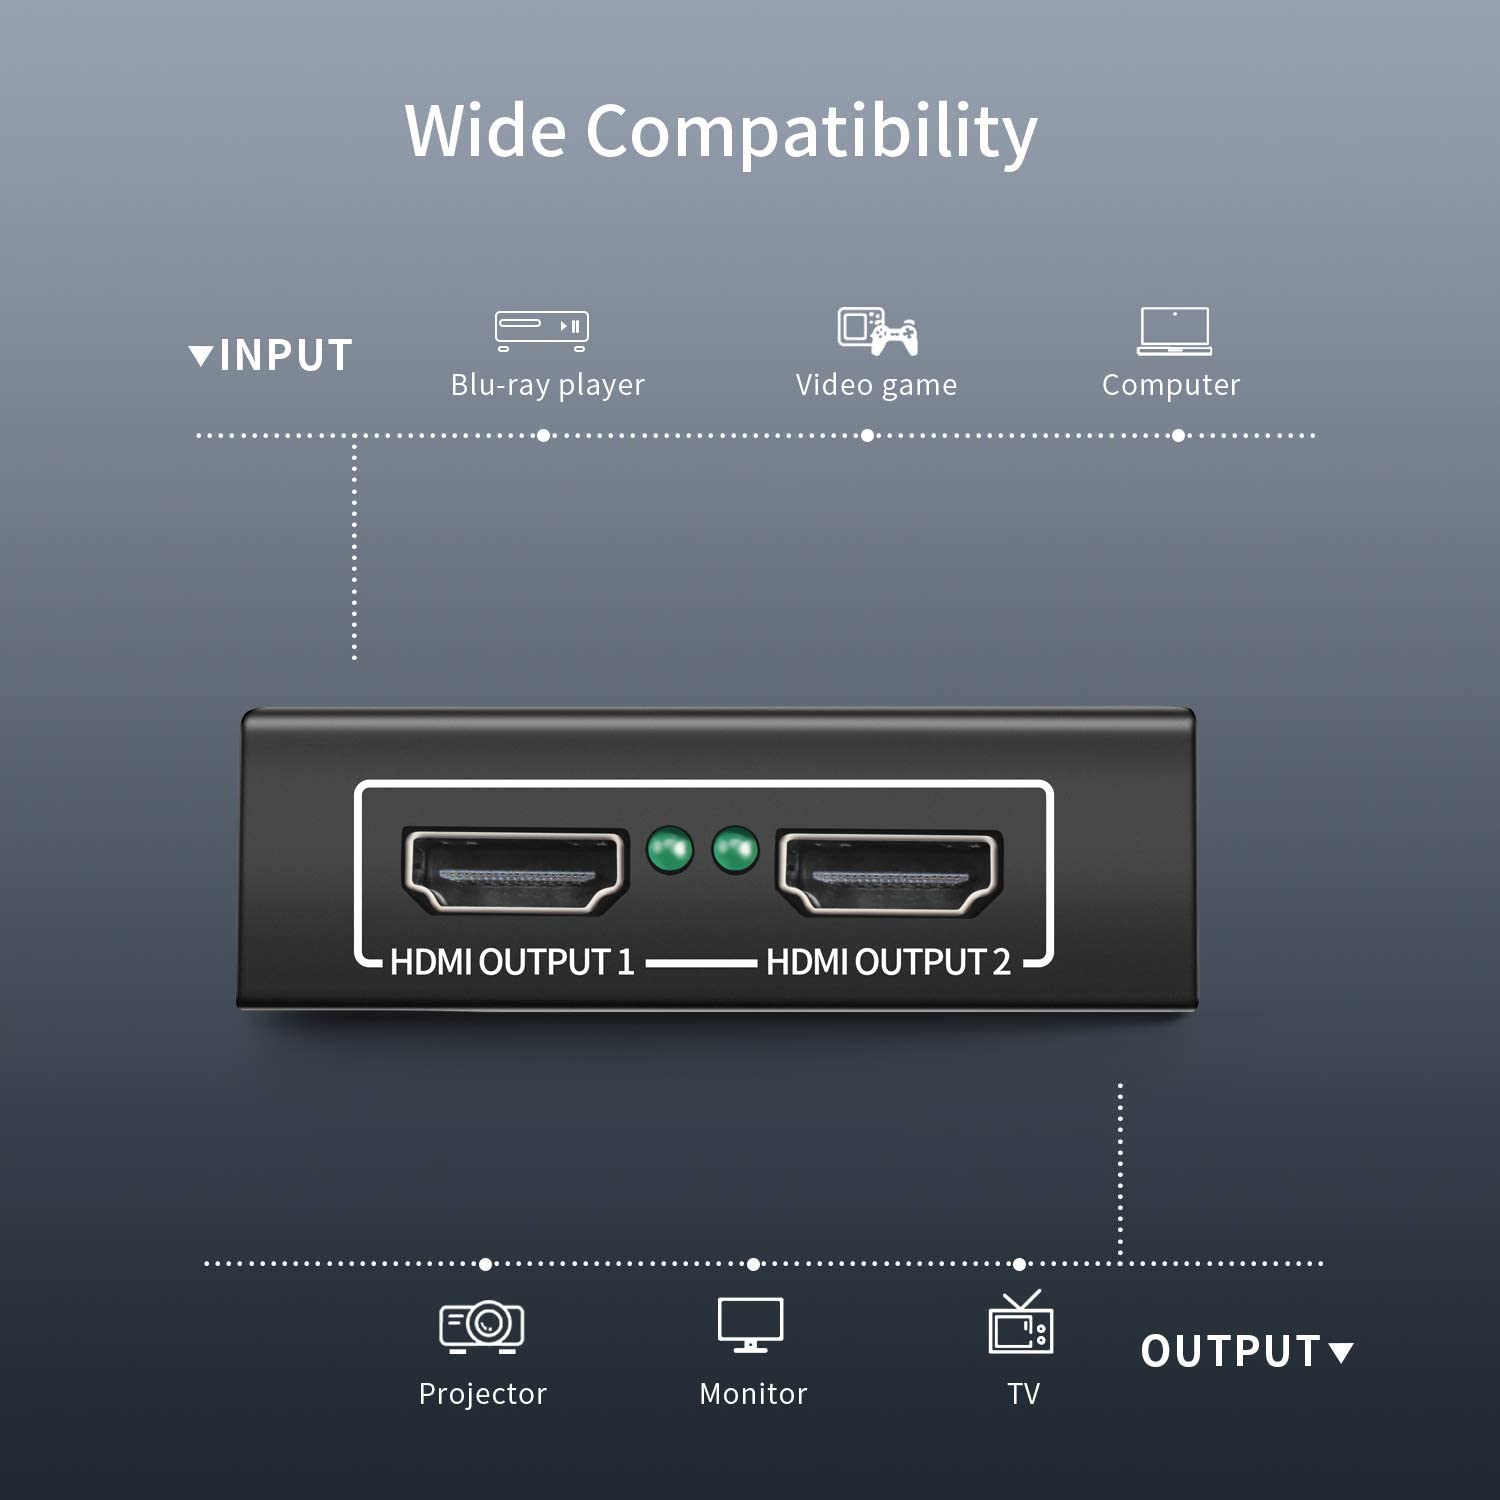 Enlody 1x2 HDMI Splitter 1 in 2 Out 4K 60Hz HDCP 2.2 Bypass 1 Input to 2 Outputs Support 18Gbps YUV 4:4:4 HDR10 3D for Duplicate// Mirror Dual Monitor